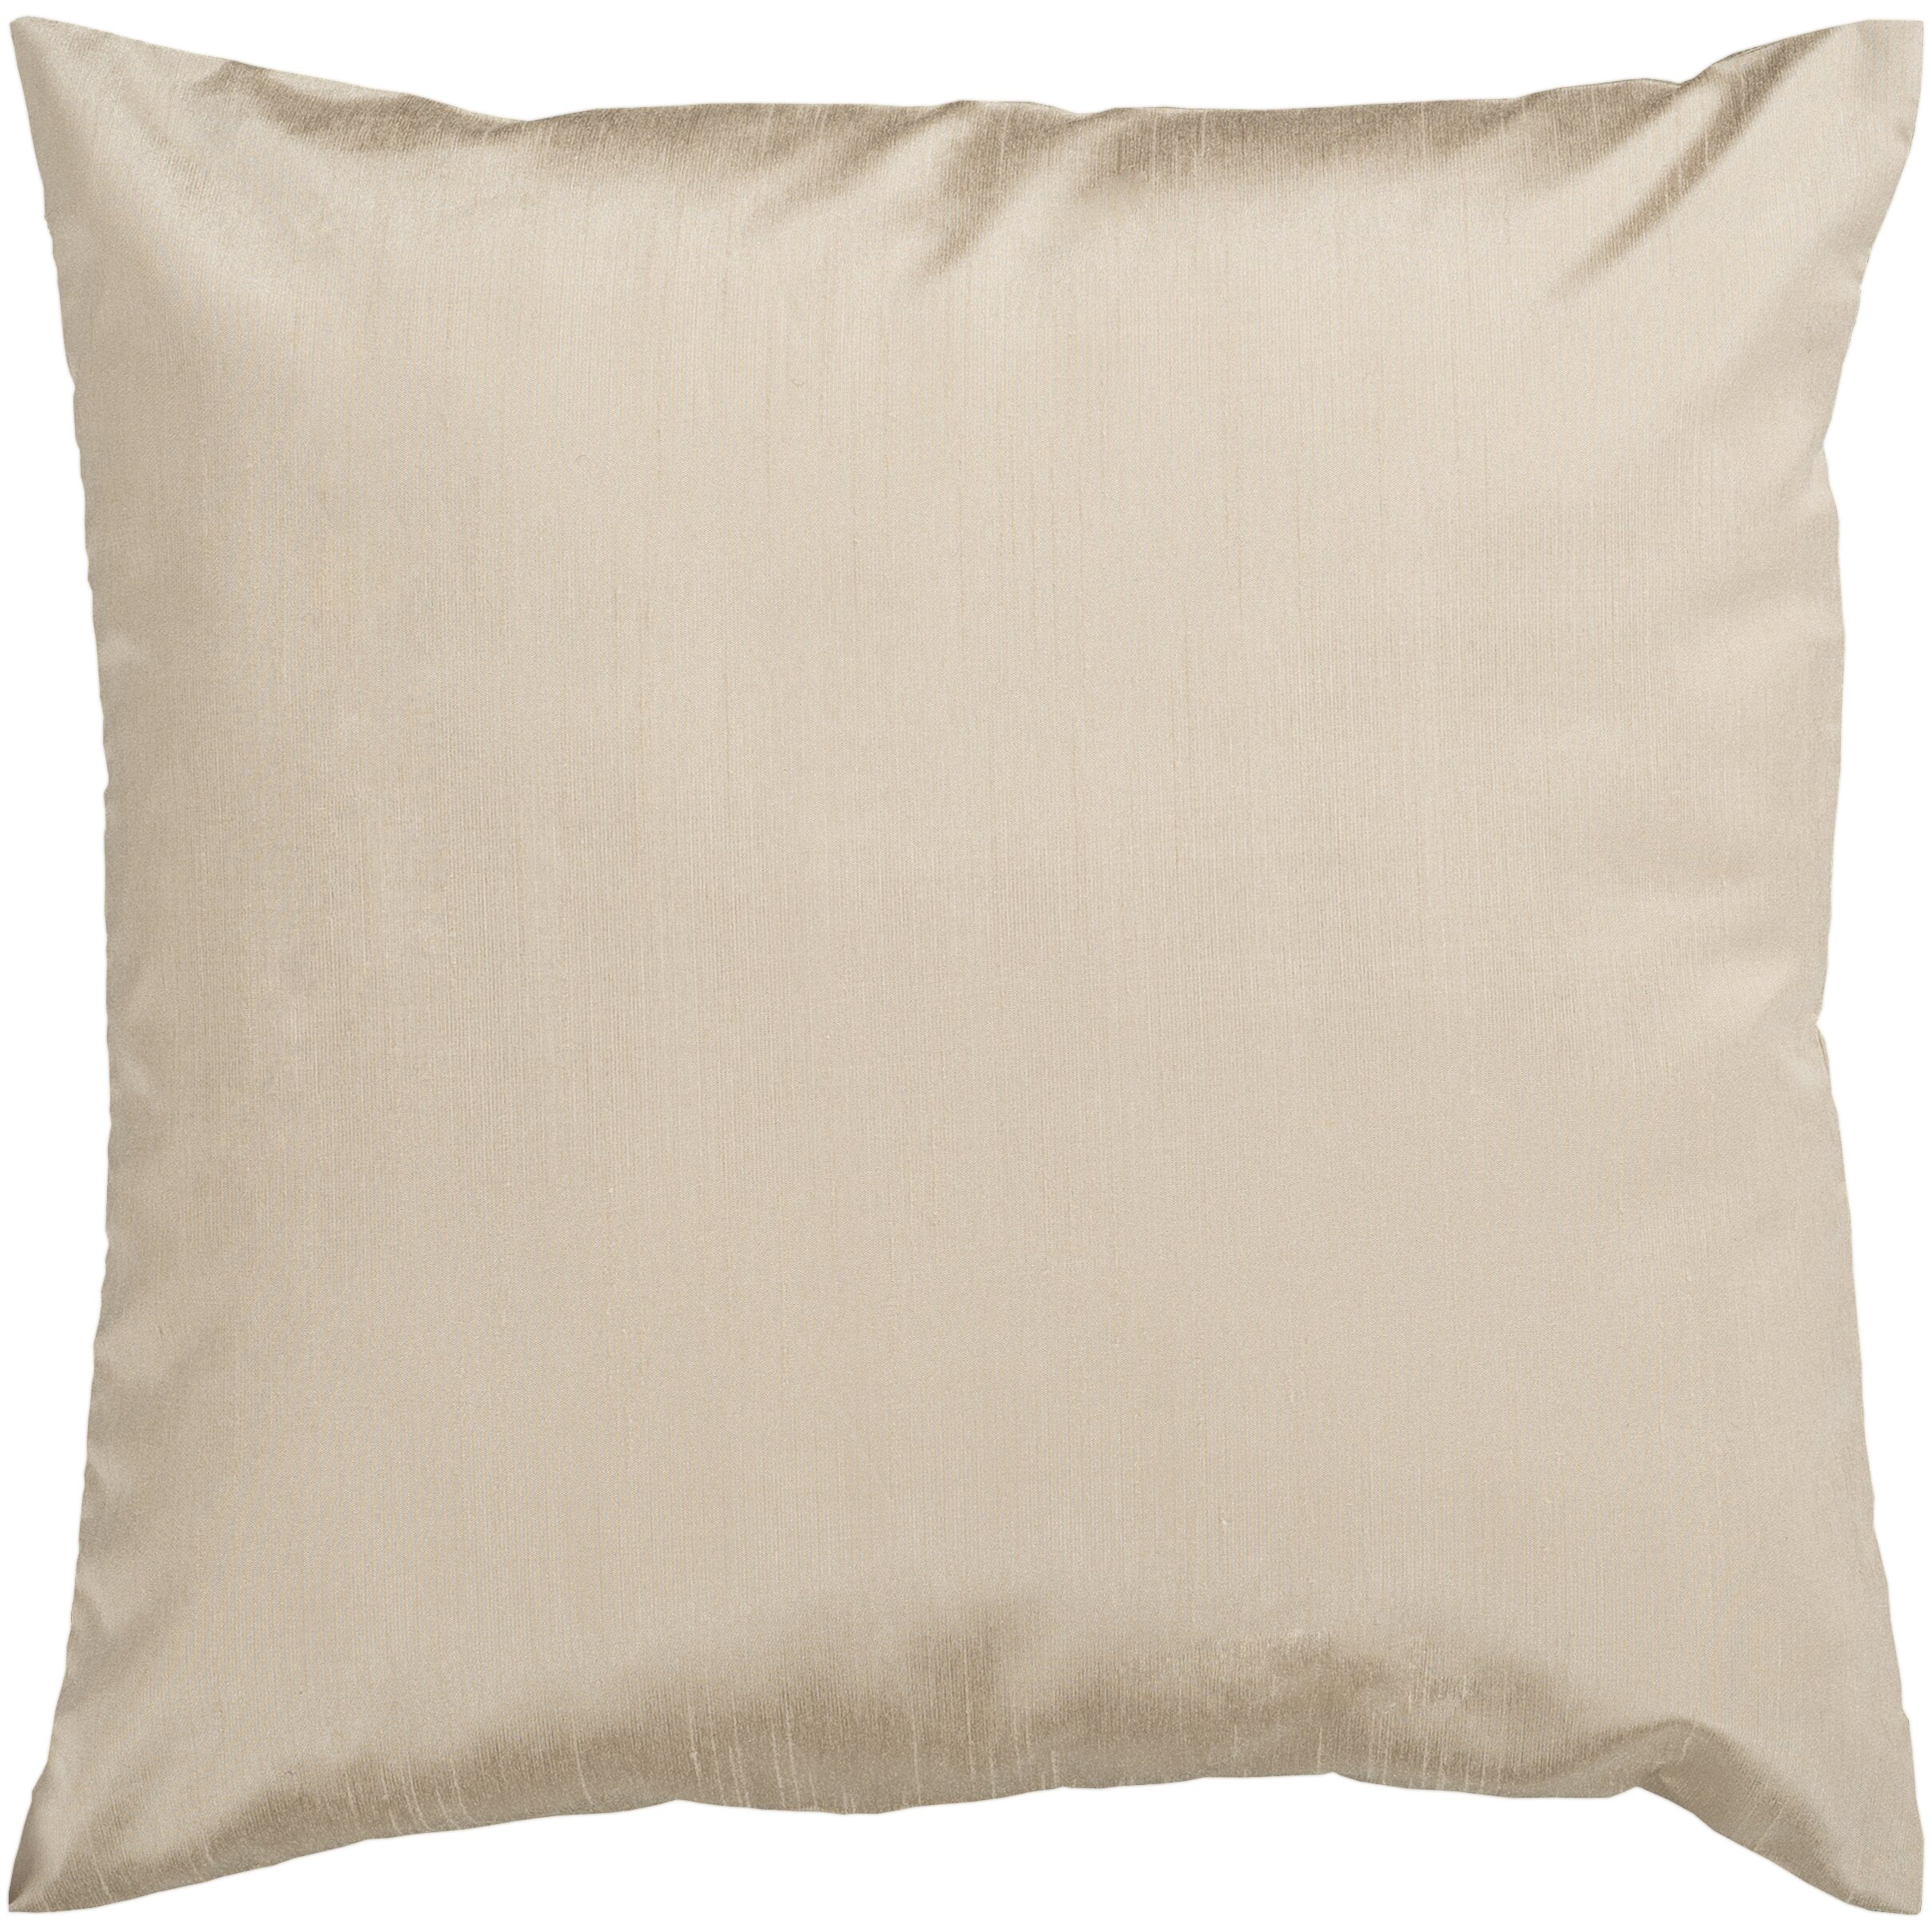 Decorative Pillow Set Throw Pillows Youll Love Wayfair